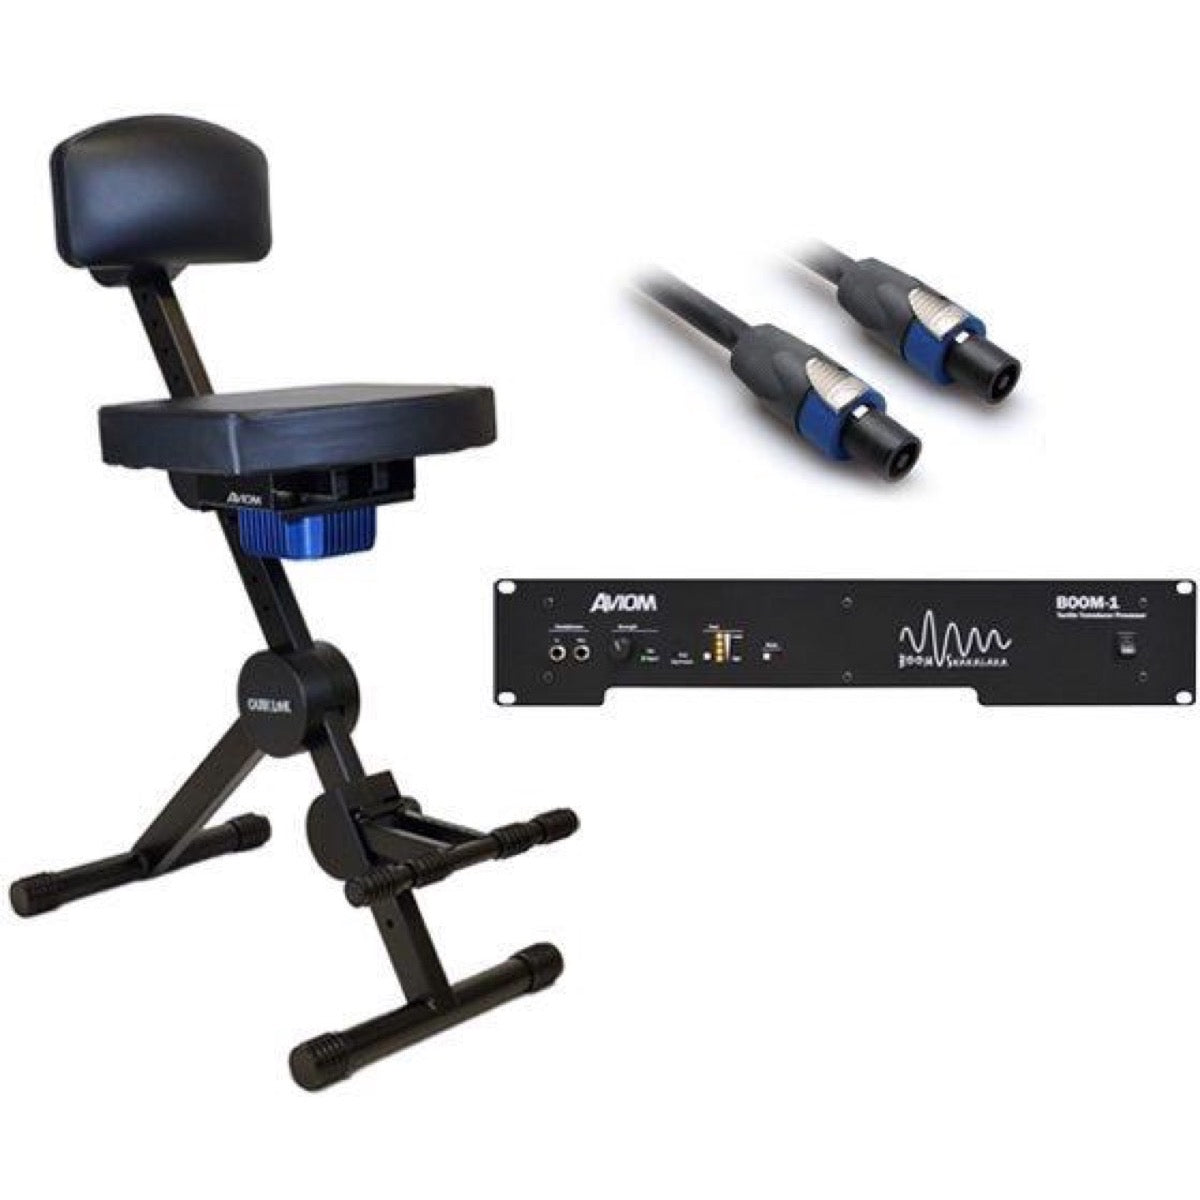 Aviom PFS-1 Tactile Transducer Performance Stool, with Aviom BOOM-1 Tactile Transducer Processor Amp